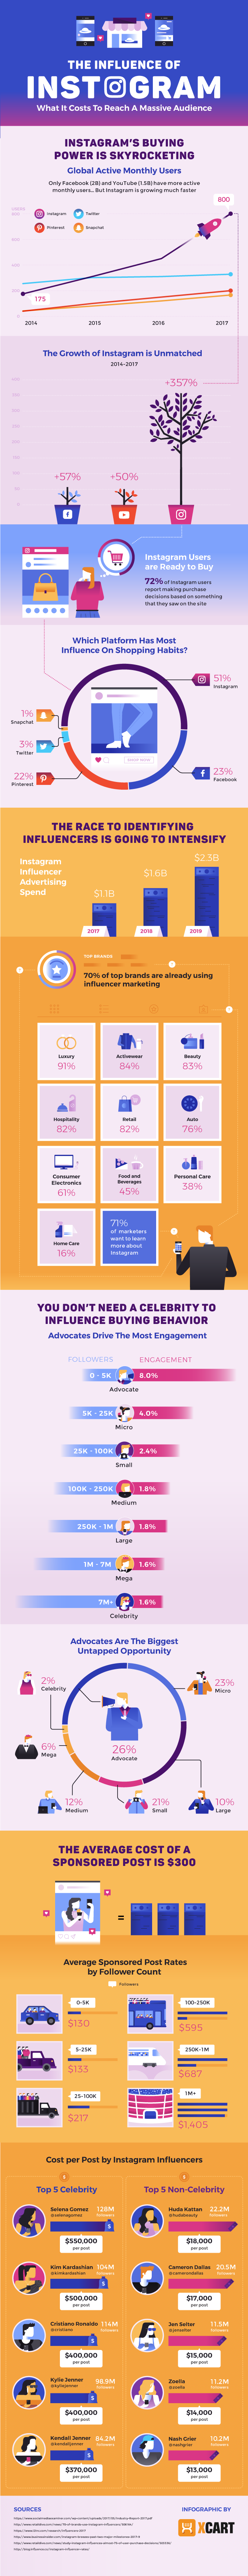 infographic from X-Cart on the influence of Instagram for business